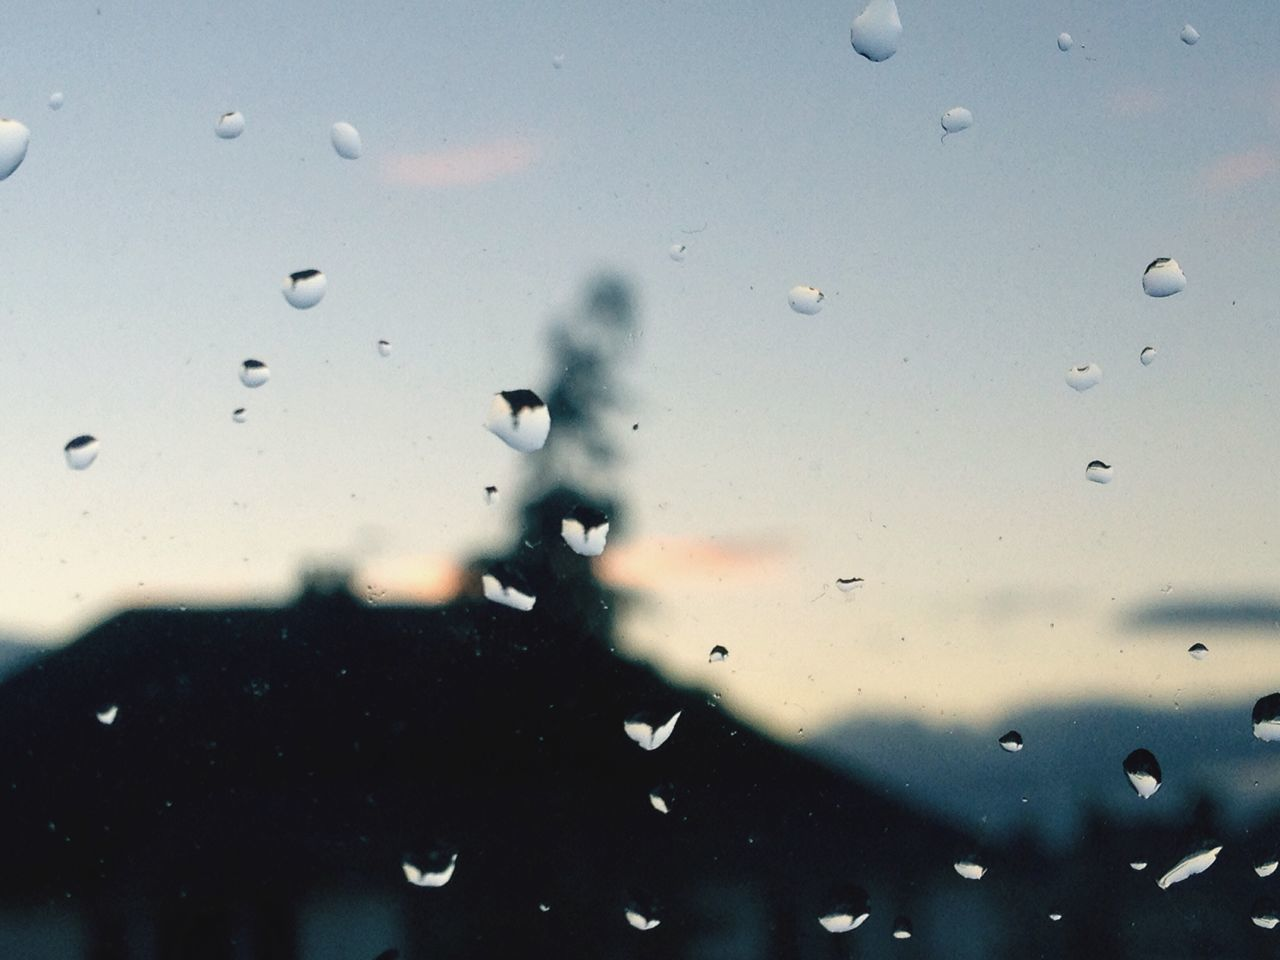 window, drop, full frame, water, backgrounds, indoors, close-up, journey, airplane wing, airplane, nature, air vehicle, no people, day, sky, sunset